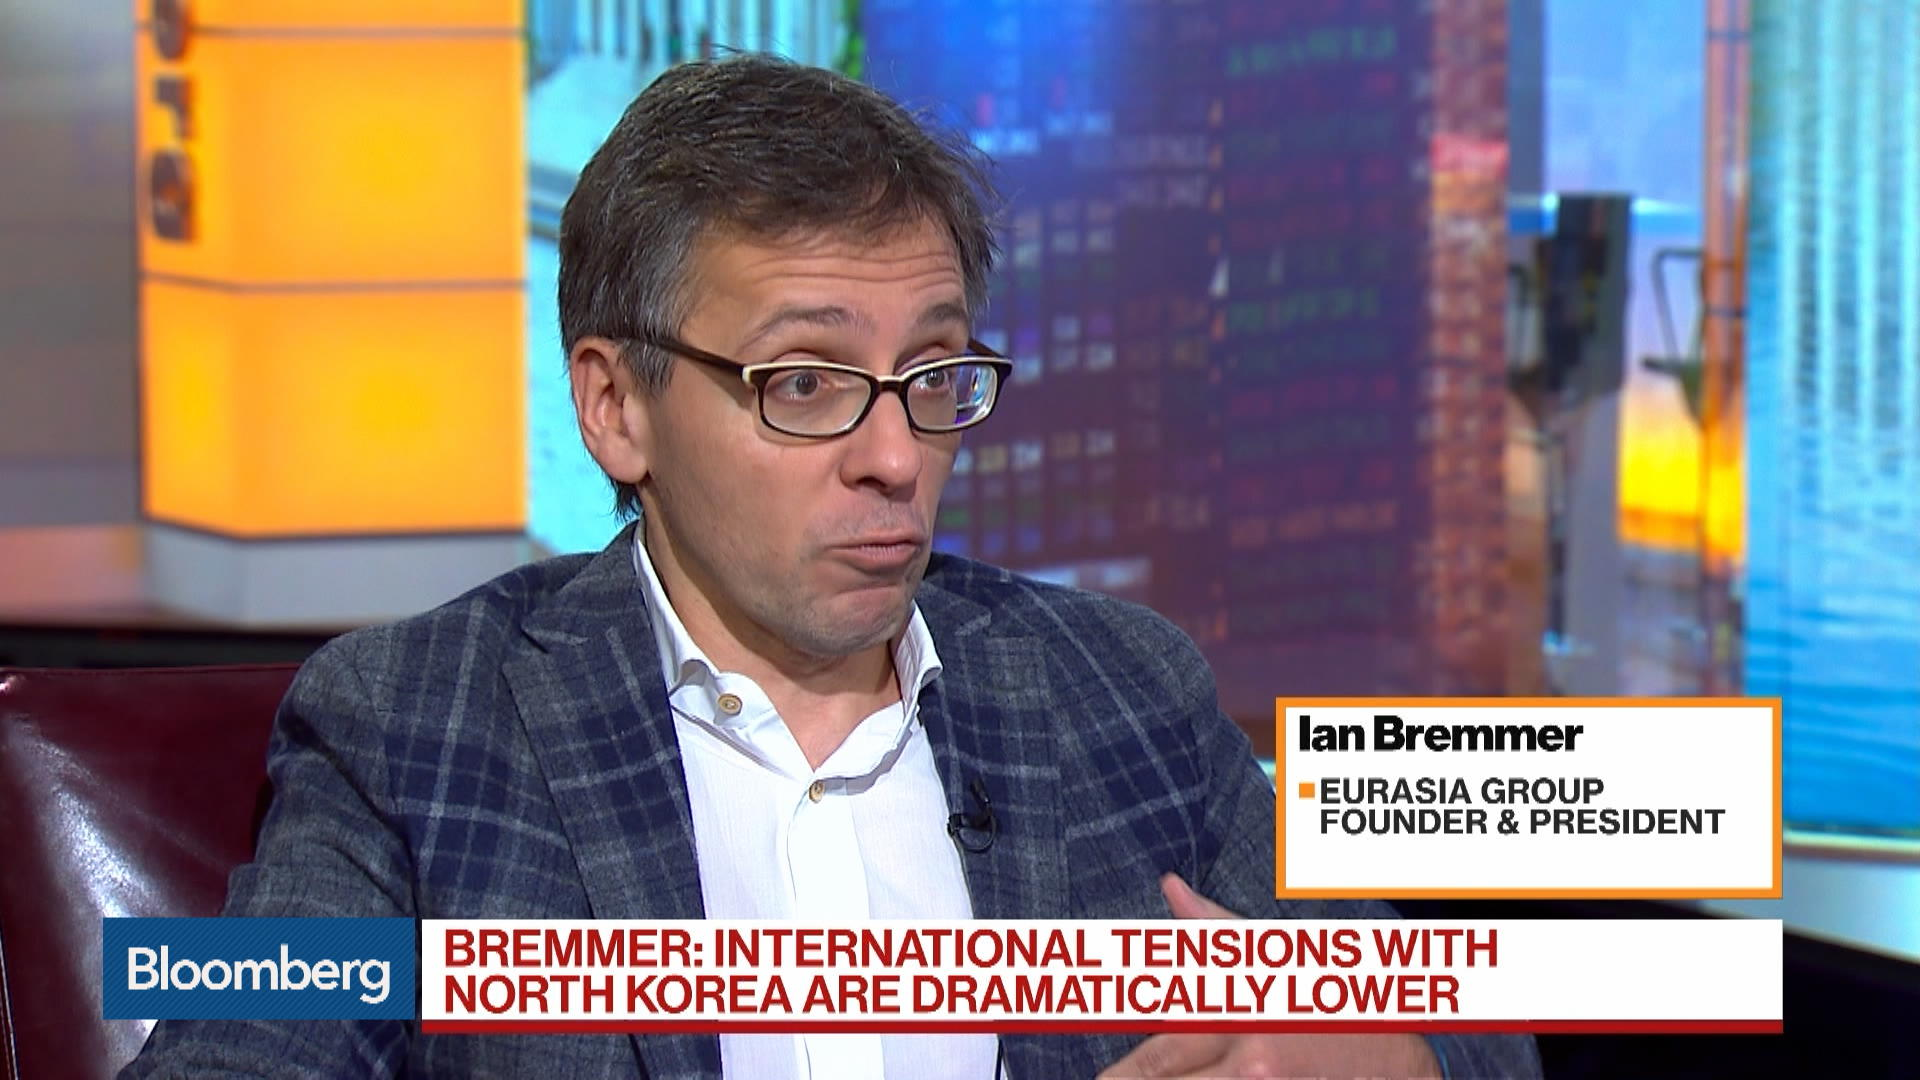 Global Tensions With N. Korea Dramatically Lower, Eurasia Group's Bremmer Says